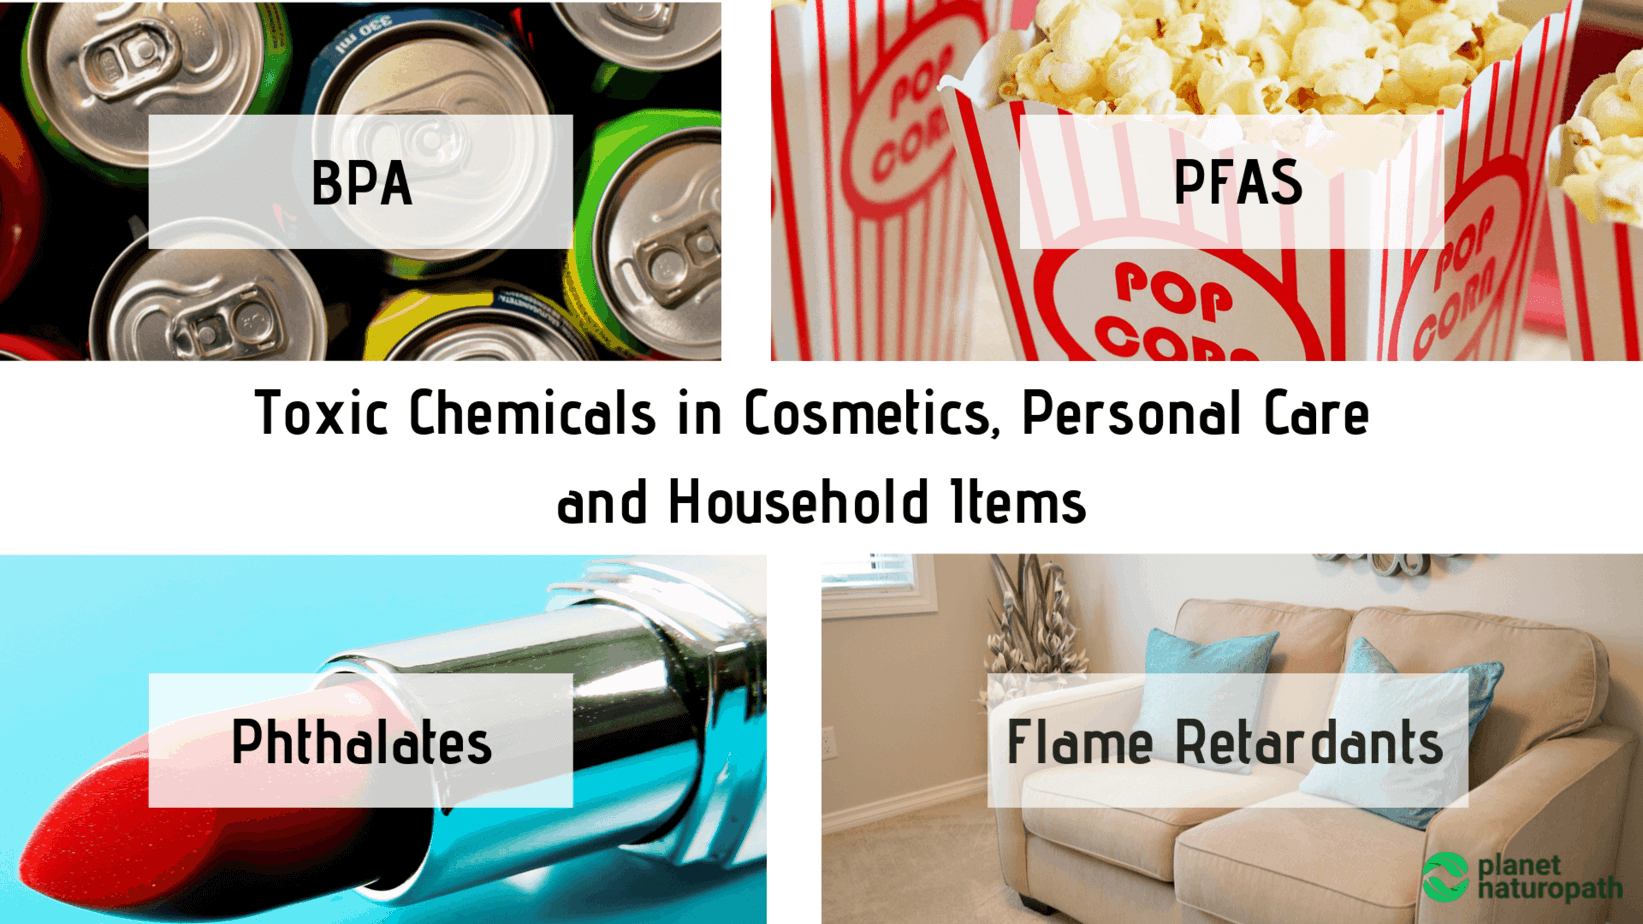 Toxic-Chemicals-in-Cosmetics-Personal-Care-and-Household-Items